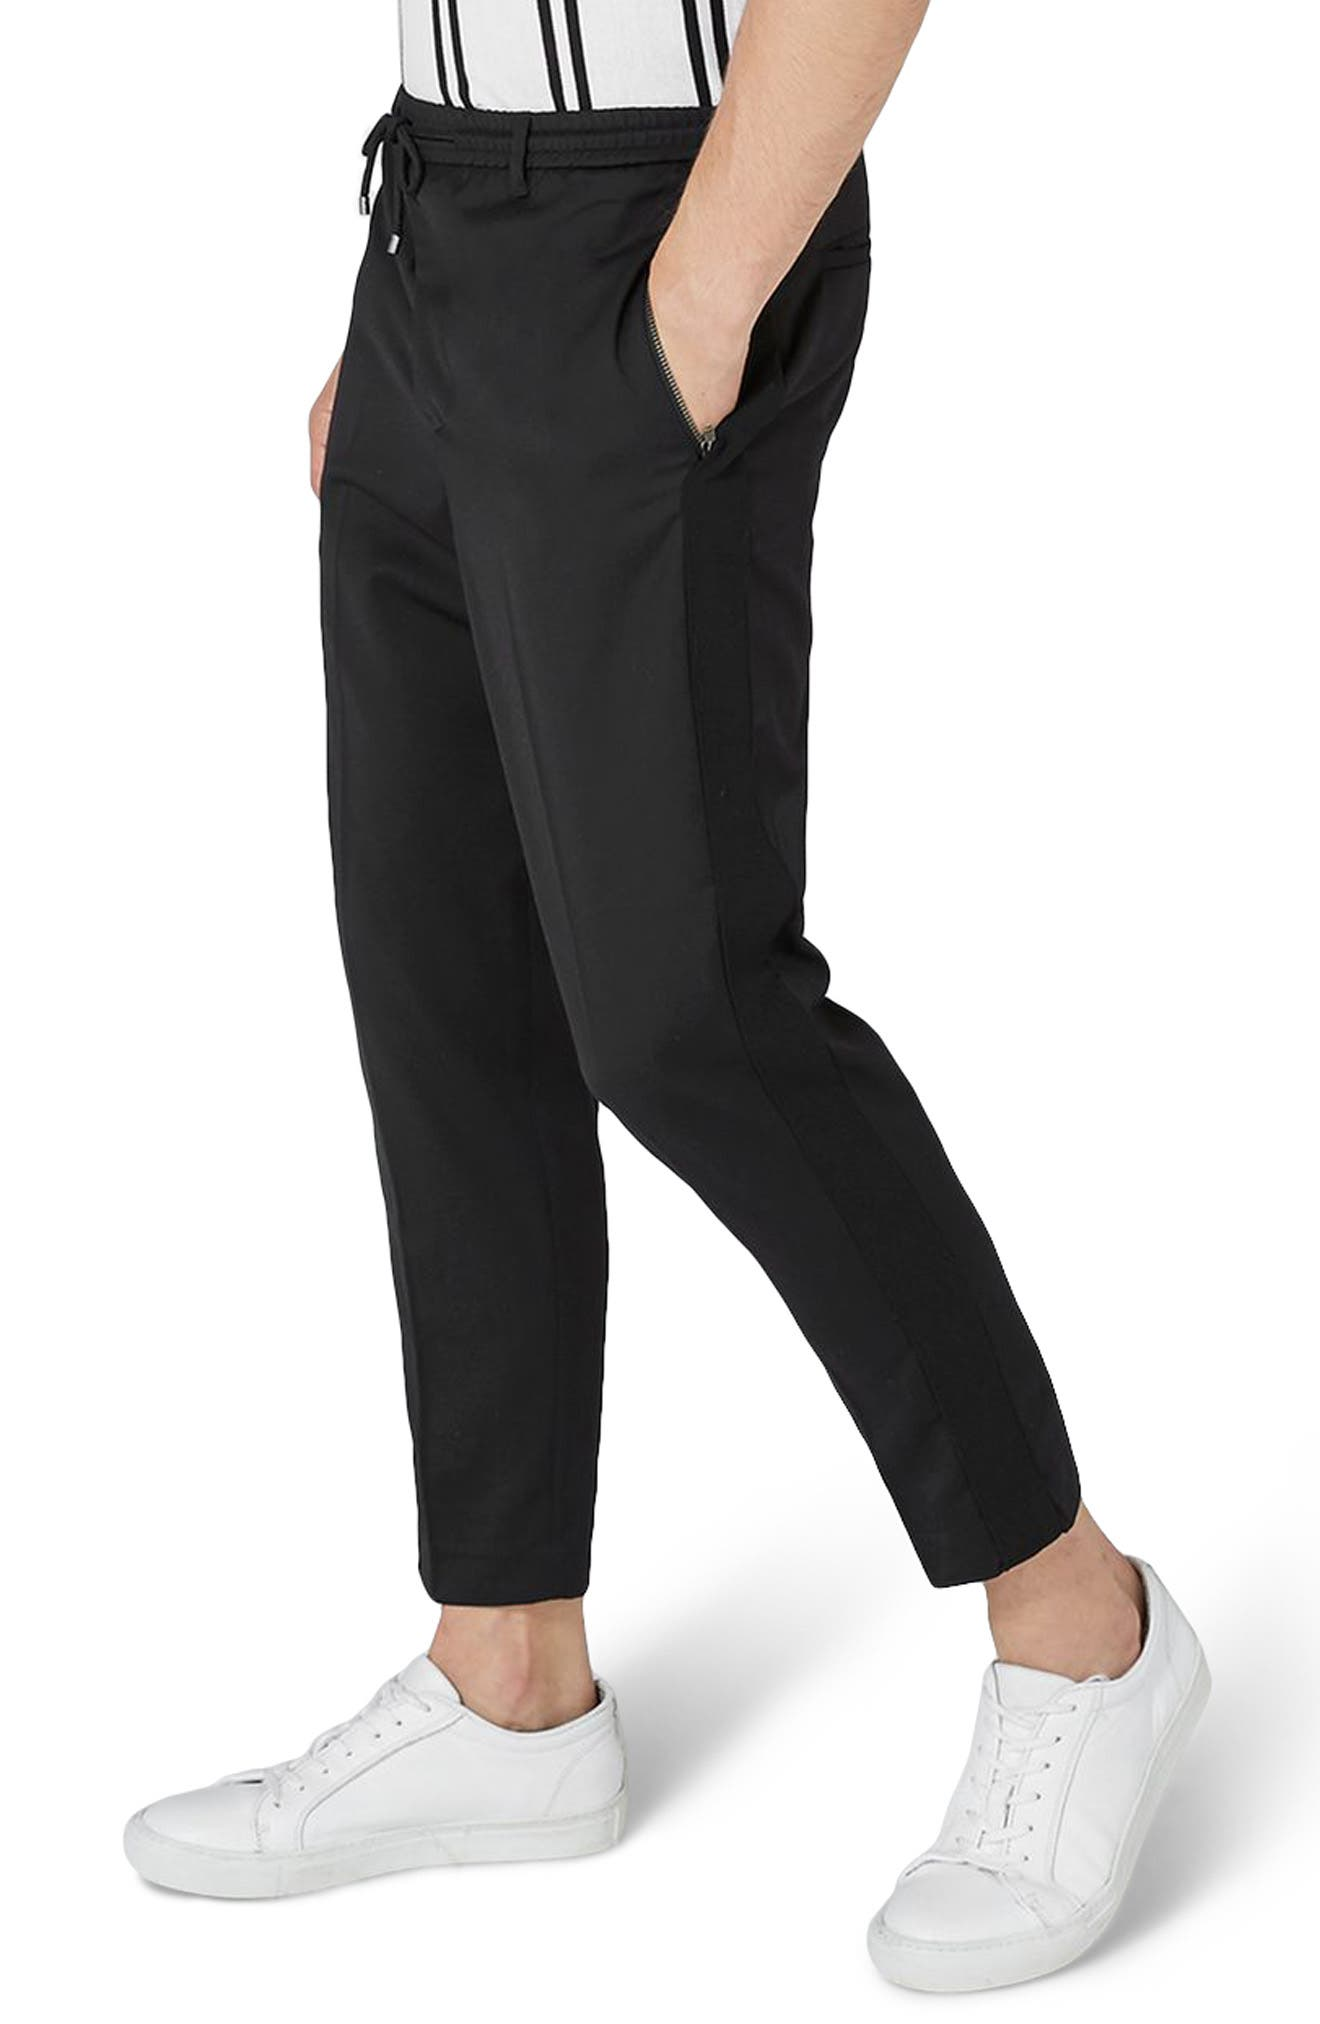 Side Zip Dress Pants,                         Main,                         color, 001